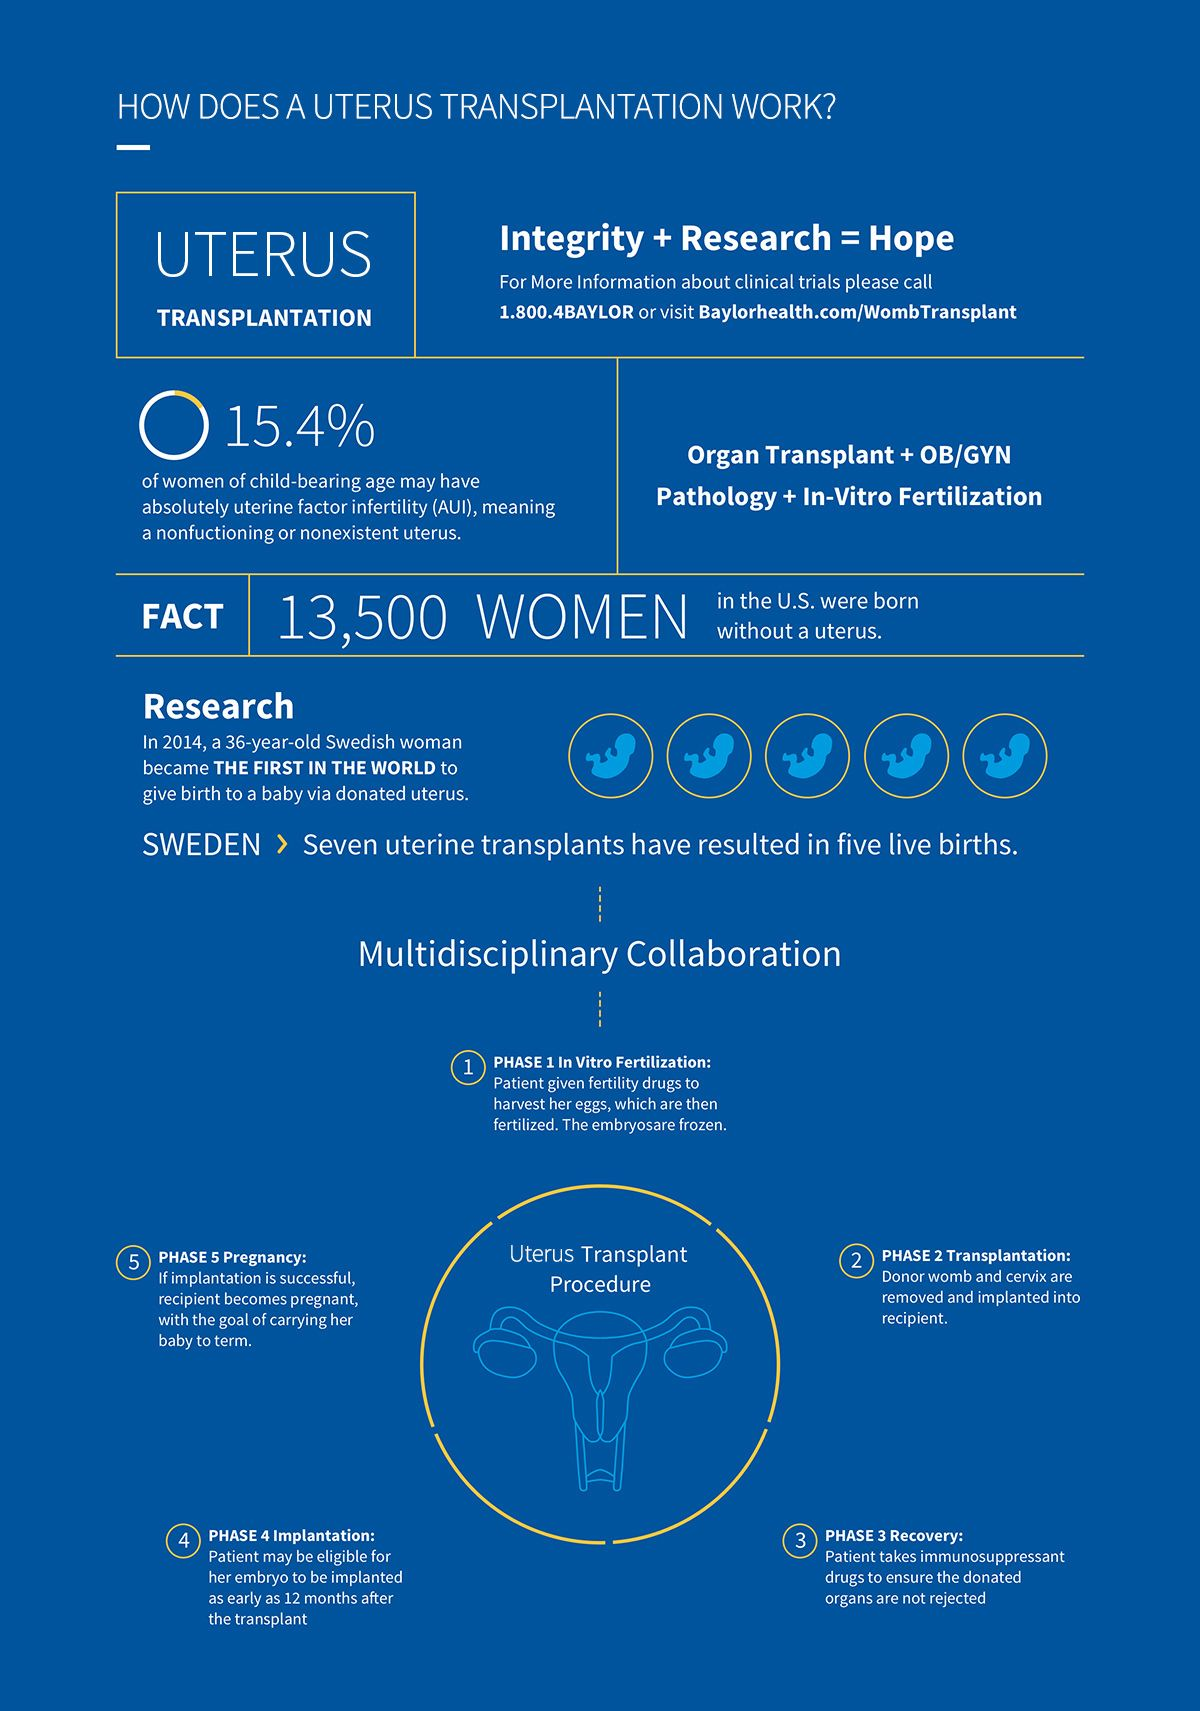 Uterus transplant infographic. Image Credit: Baylor University Medical Center at Dallas